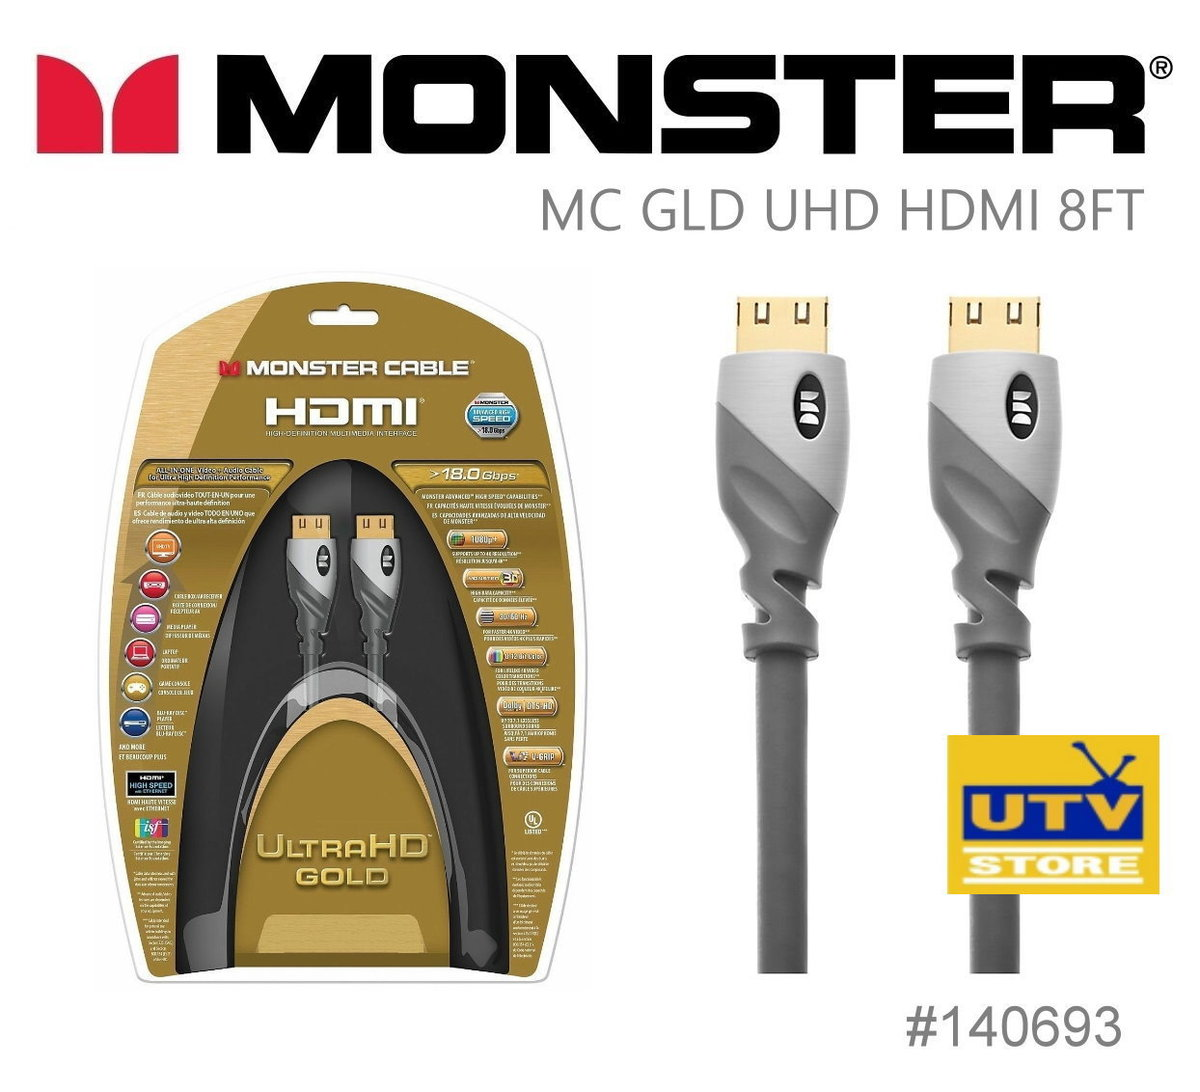 140693 UliraHD Gold HDMI Cable 2.43m / 8ft